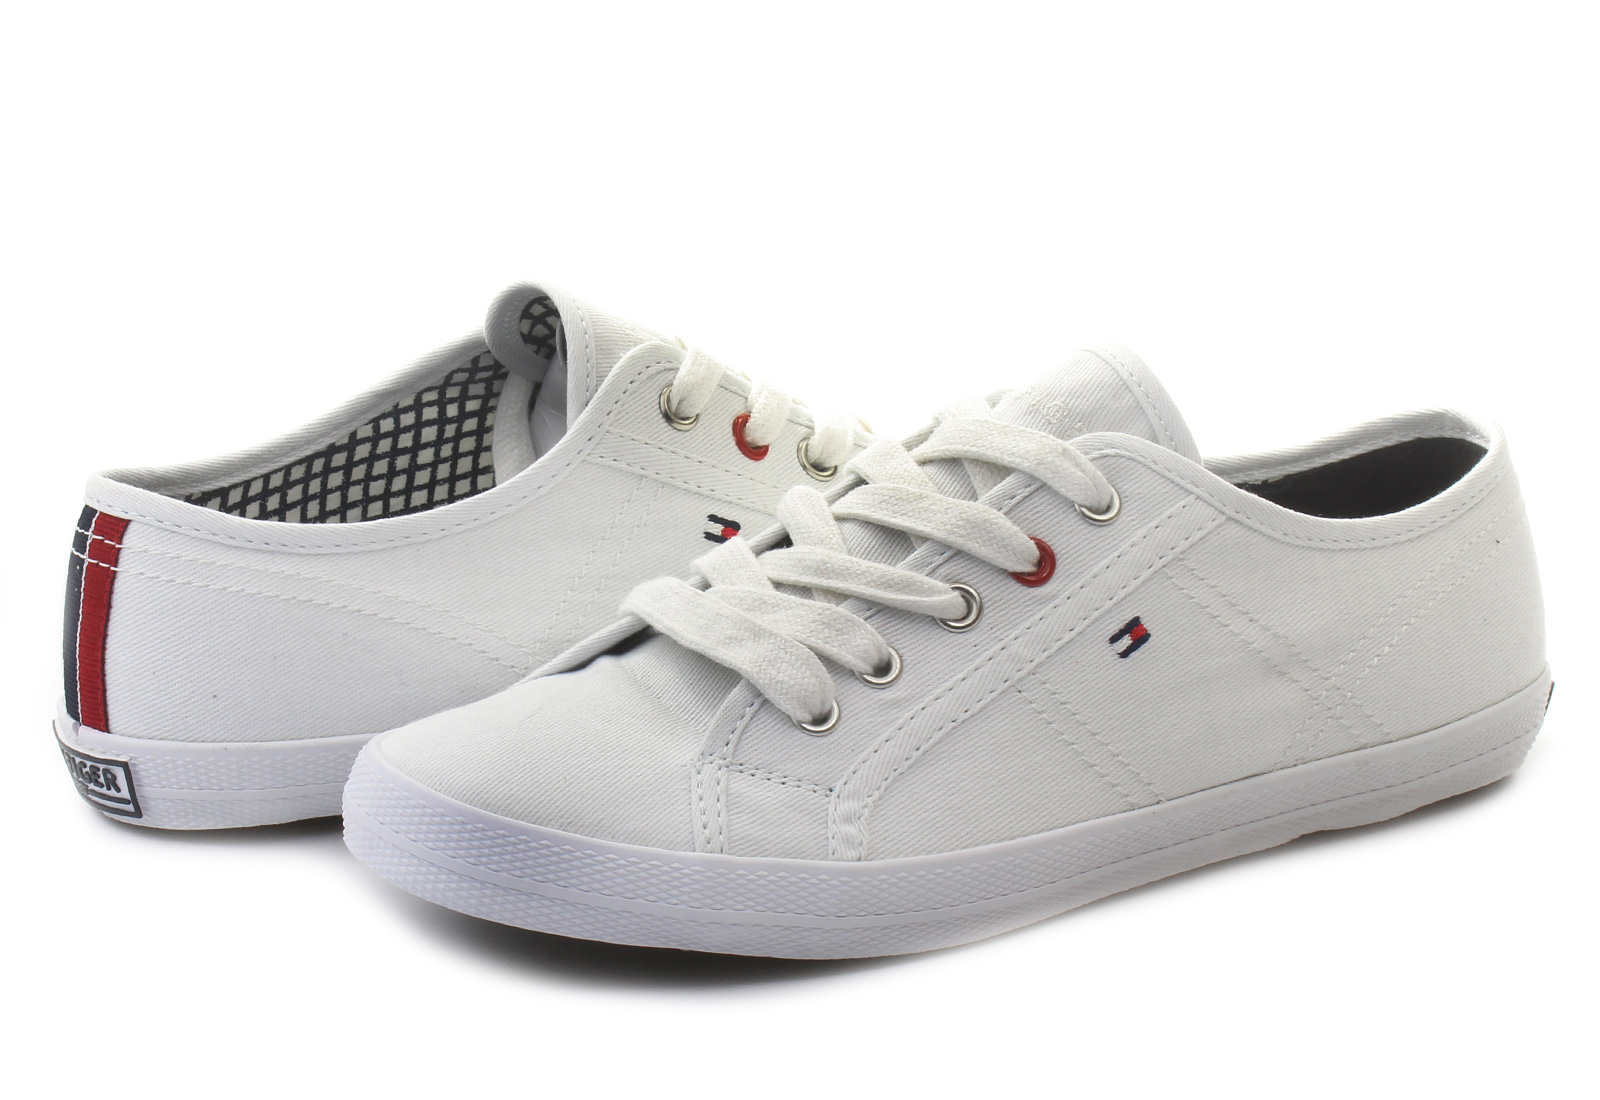 Tommy Hilfiger Tornacipő - Victoria 2d - 14S-6884-100 - Office Shoes ... 800d5881e1